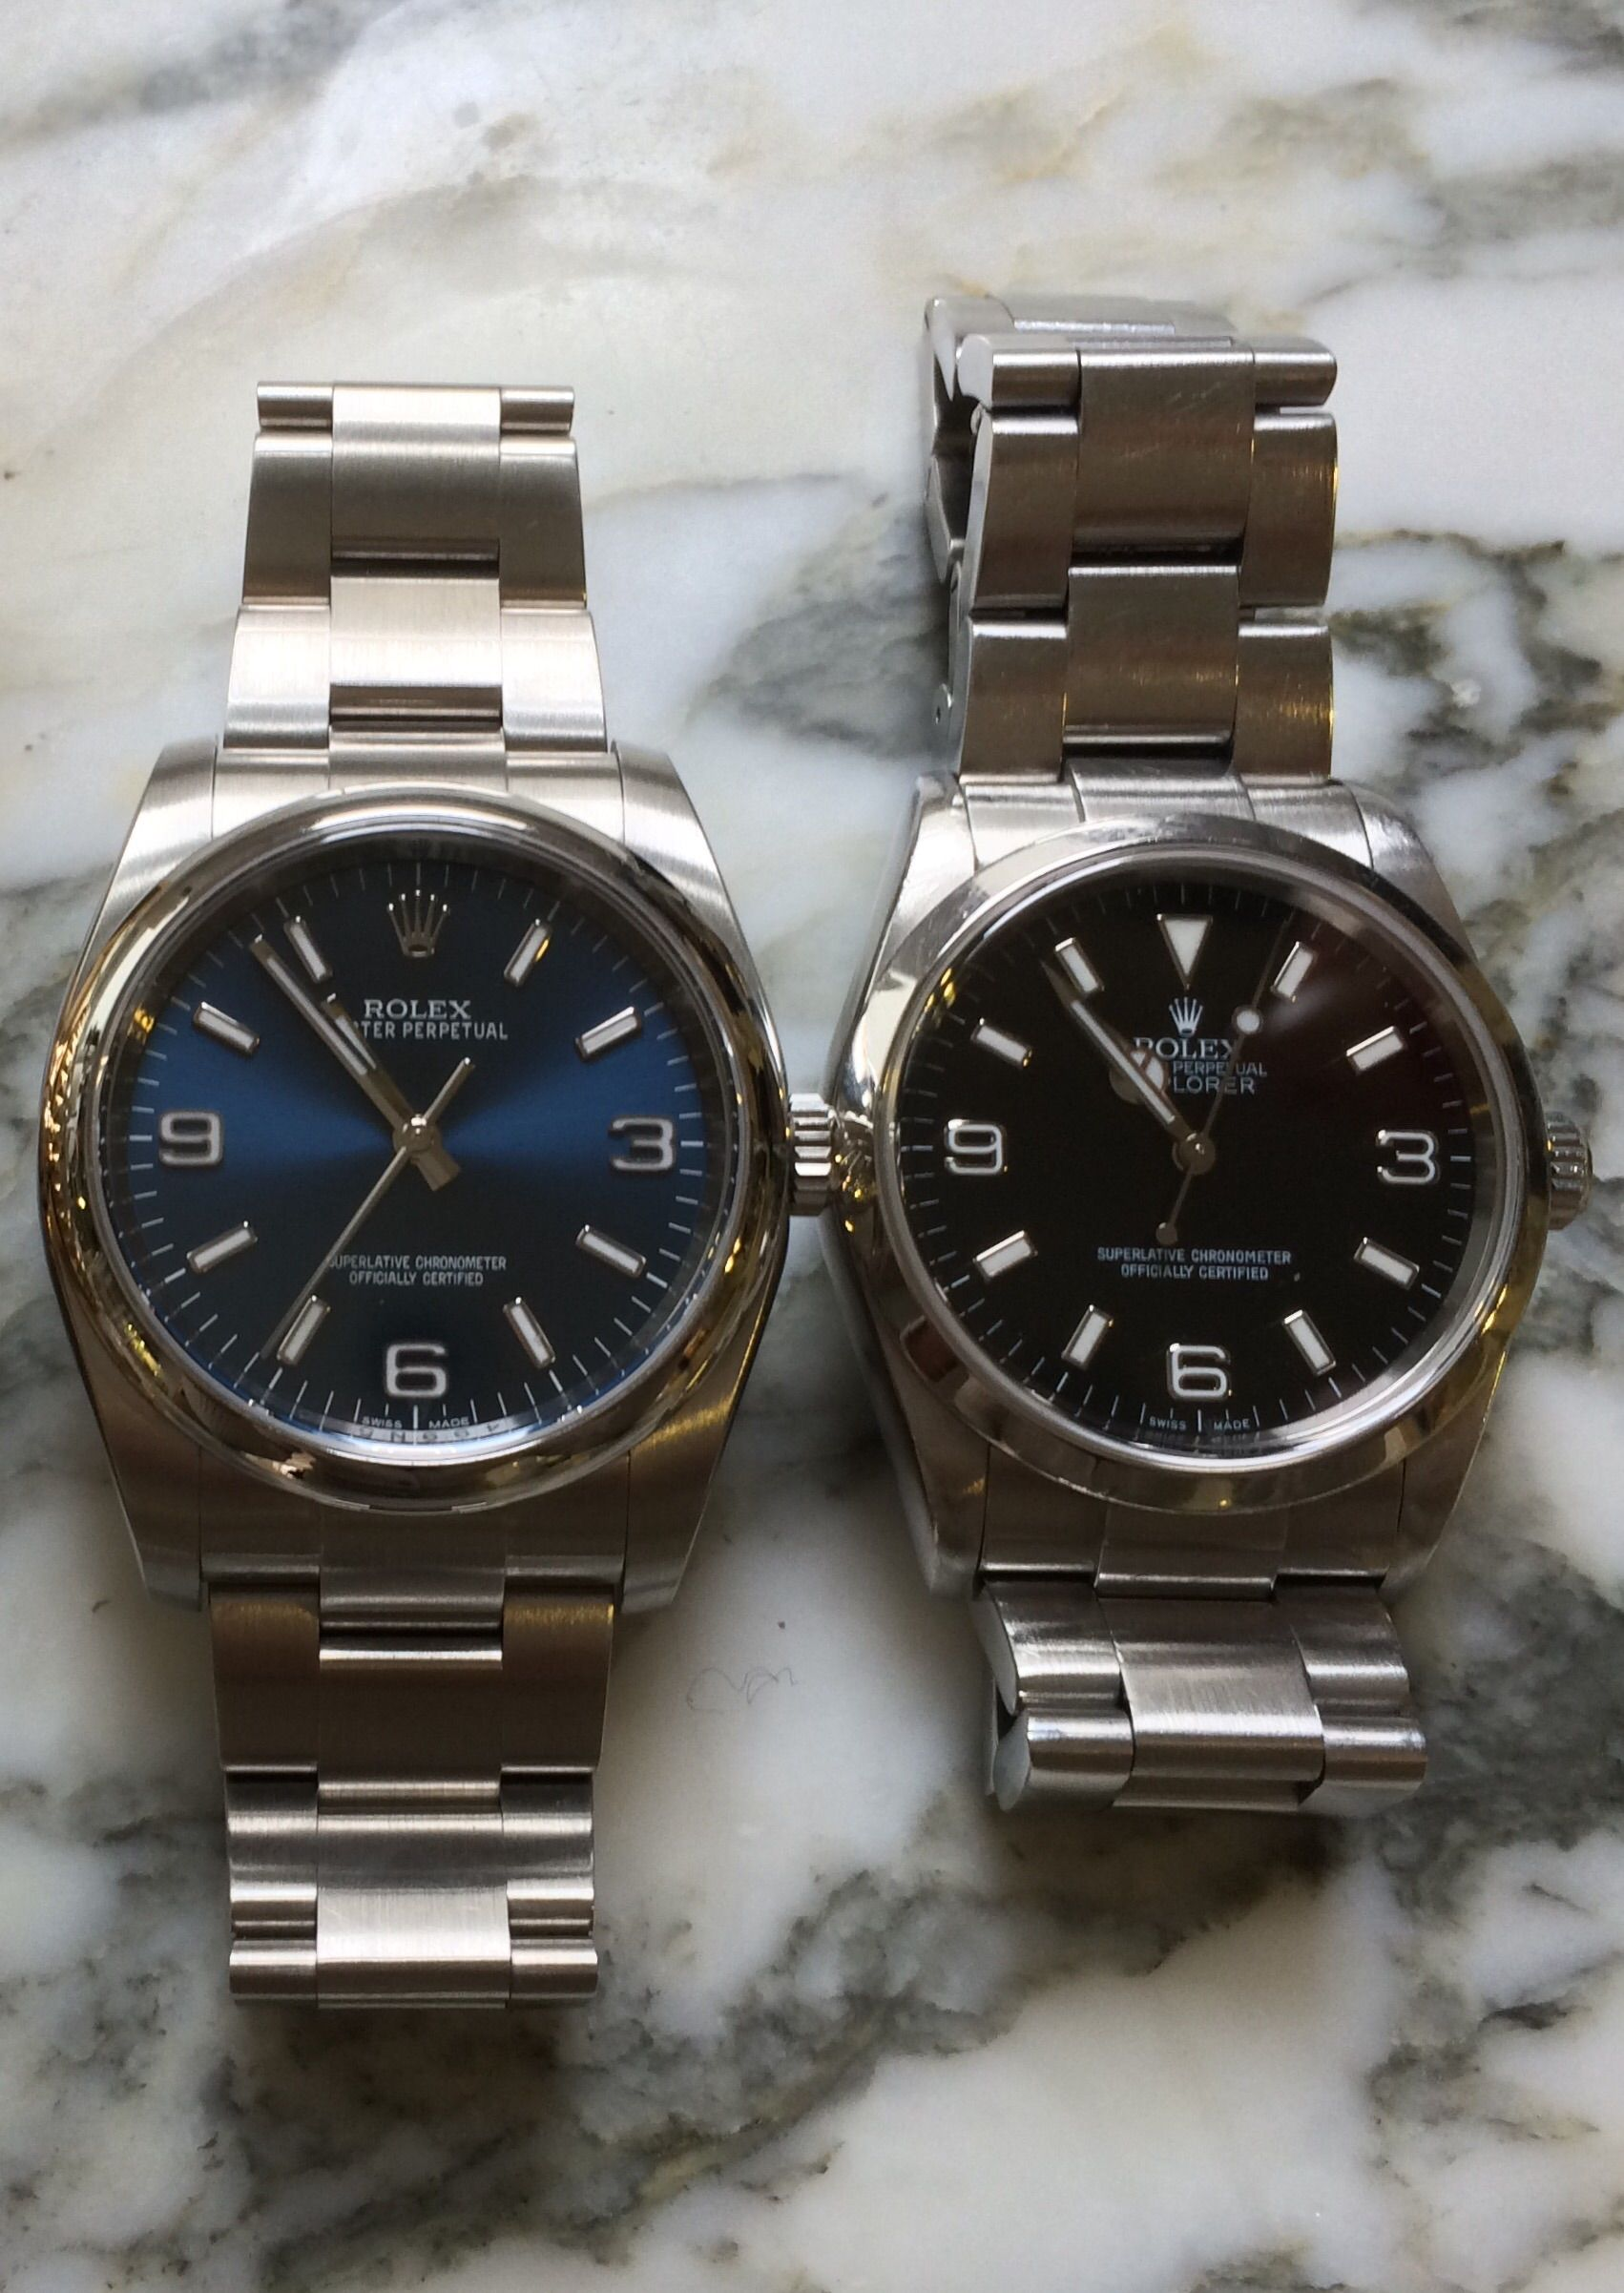 lexington non explorer rolex affordable homage micheal portuguese kors alternatives watches watch iwc